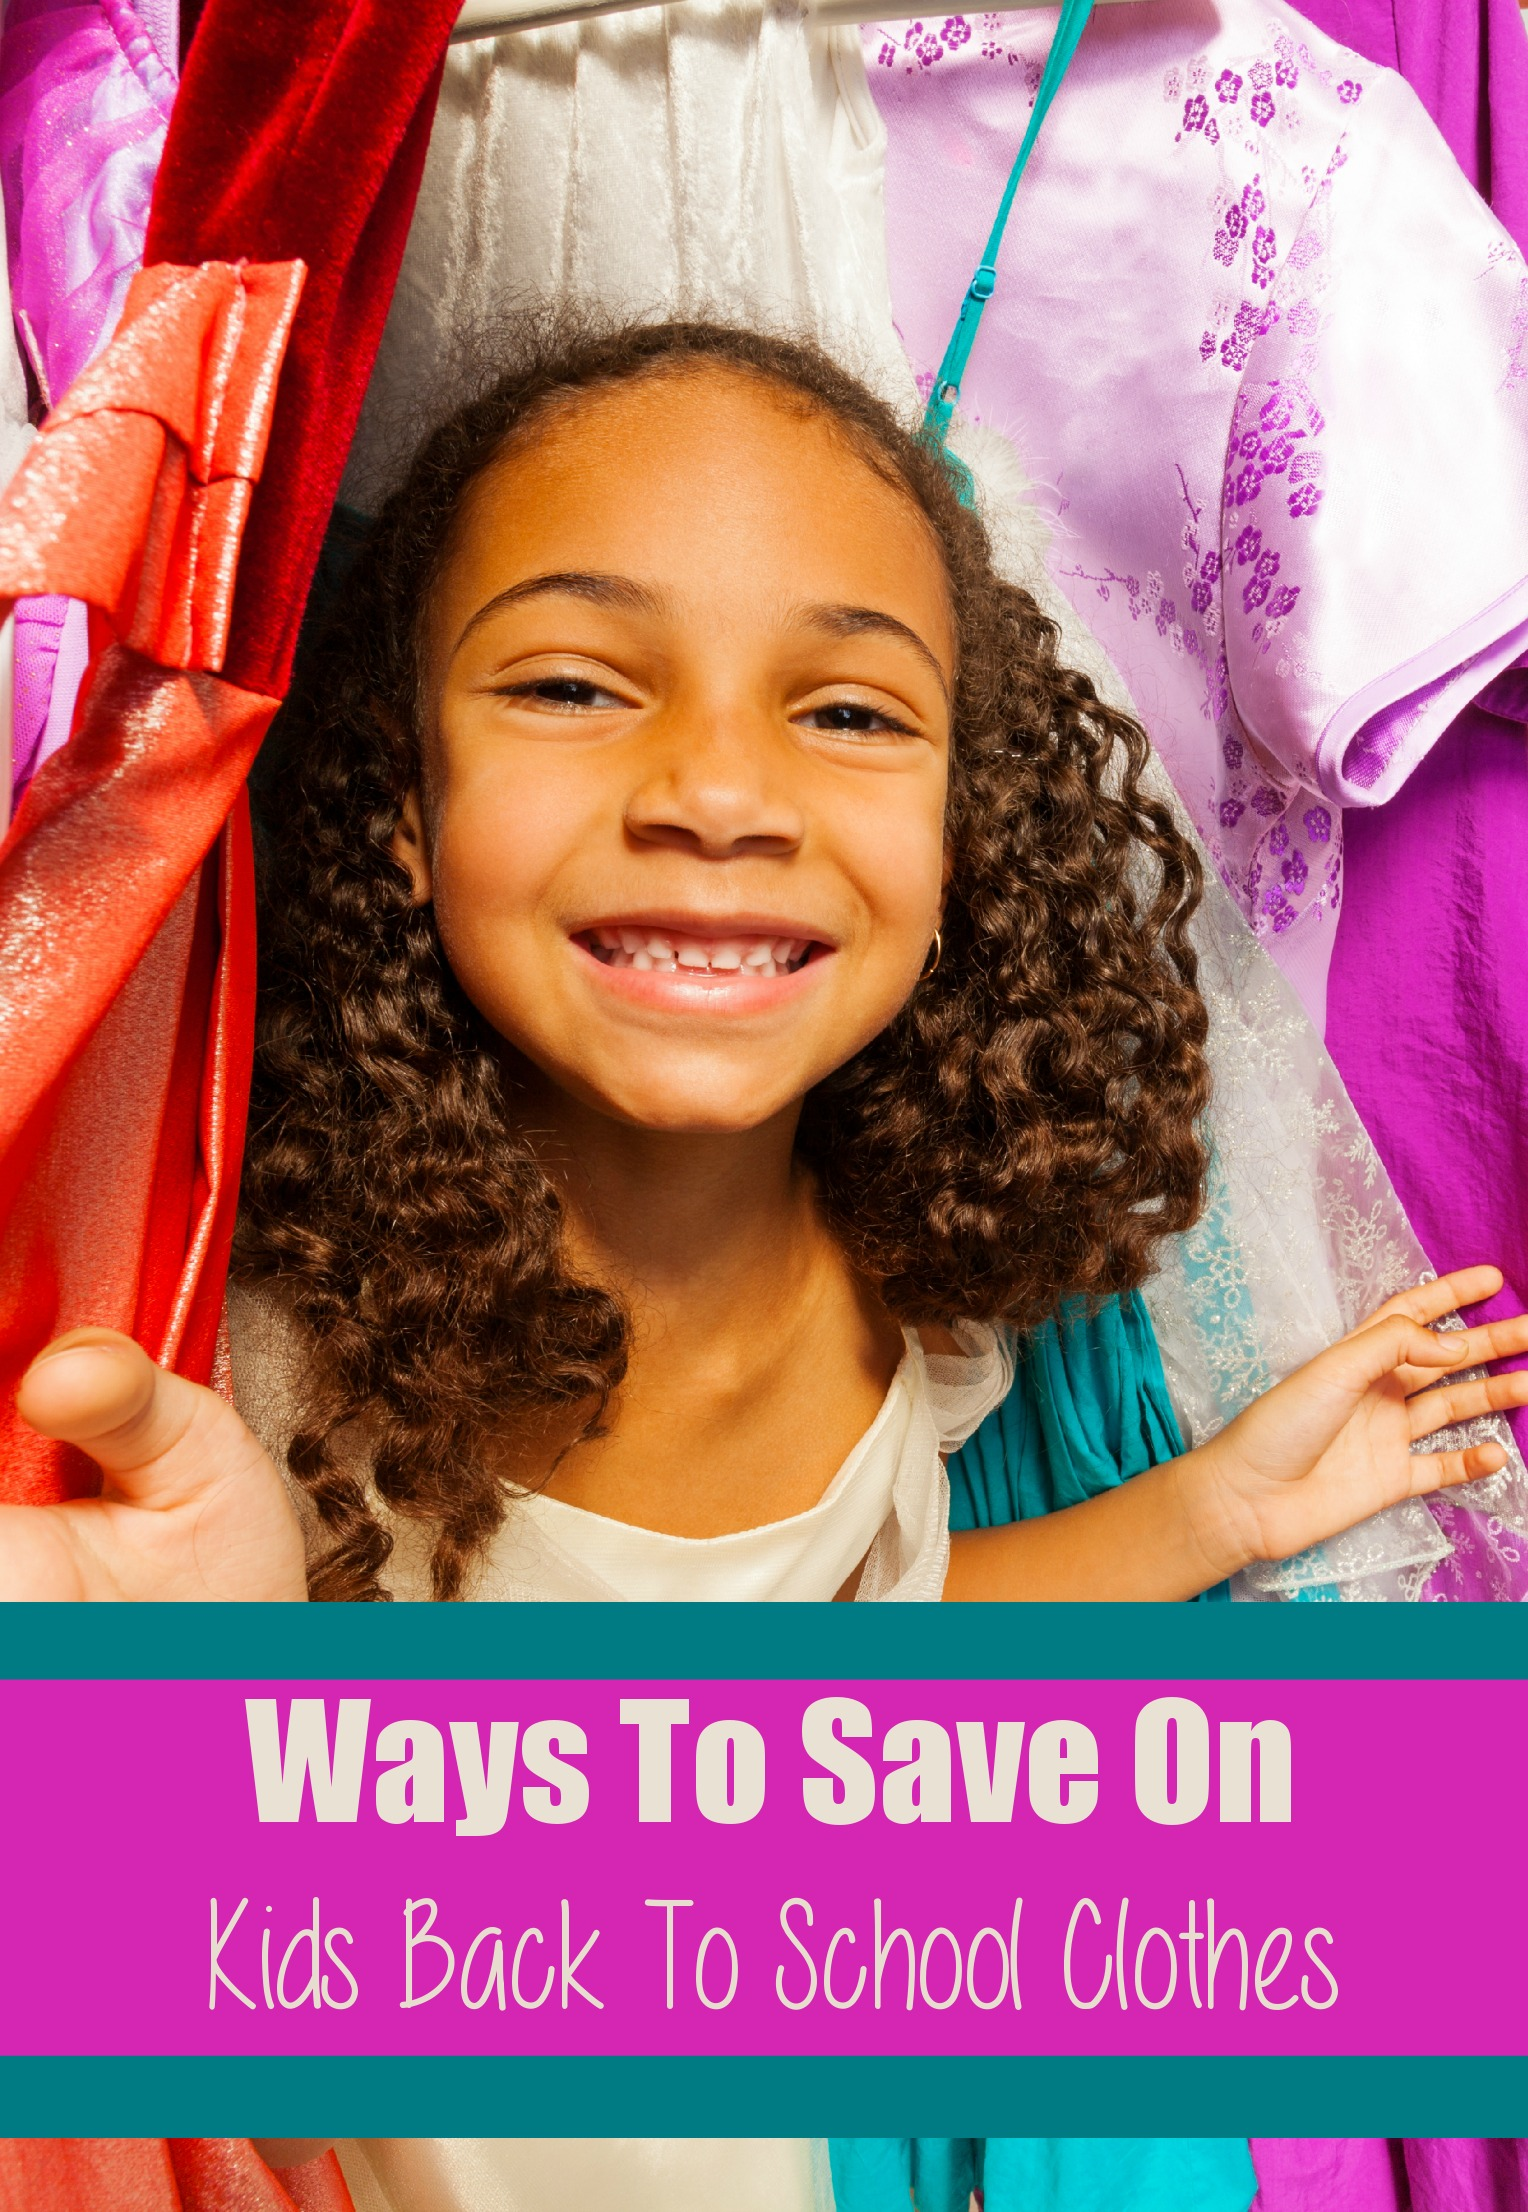 Ways To Save On Kids Back To School Clothes